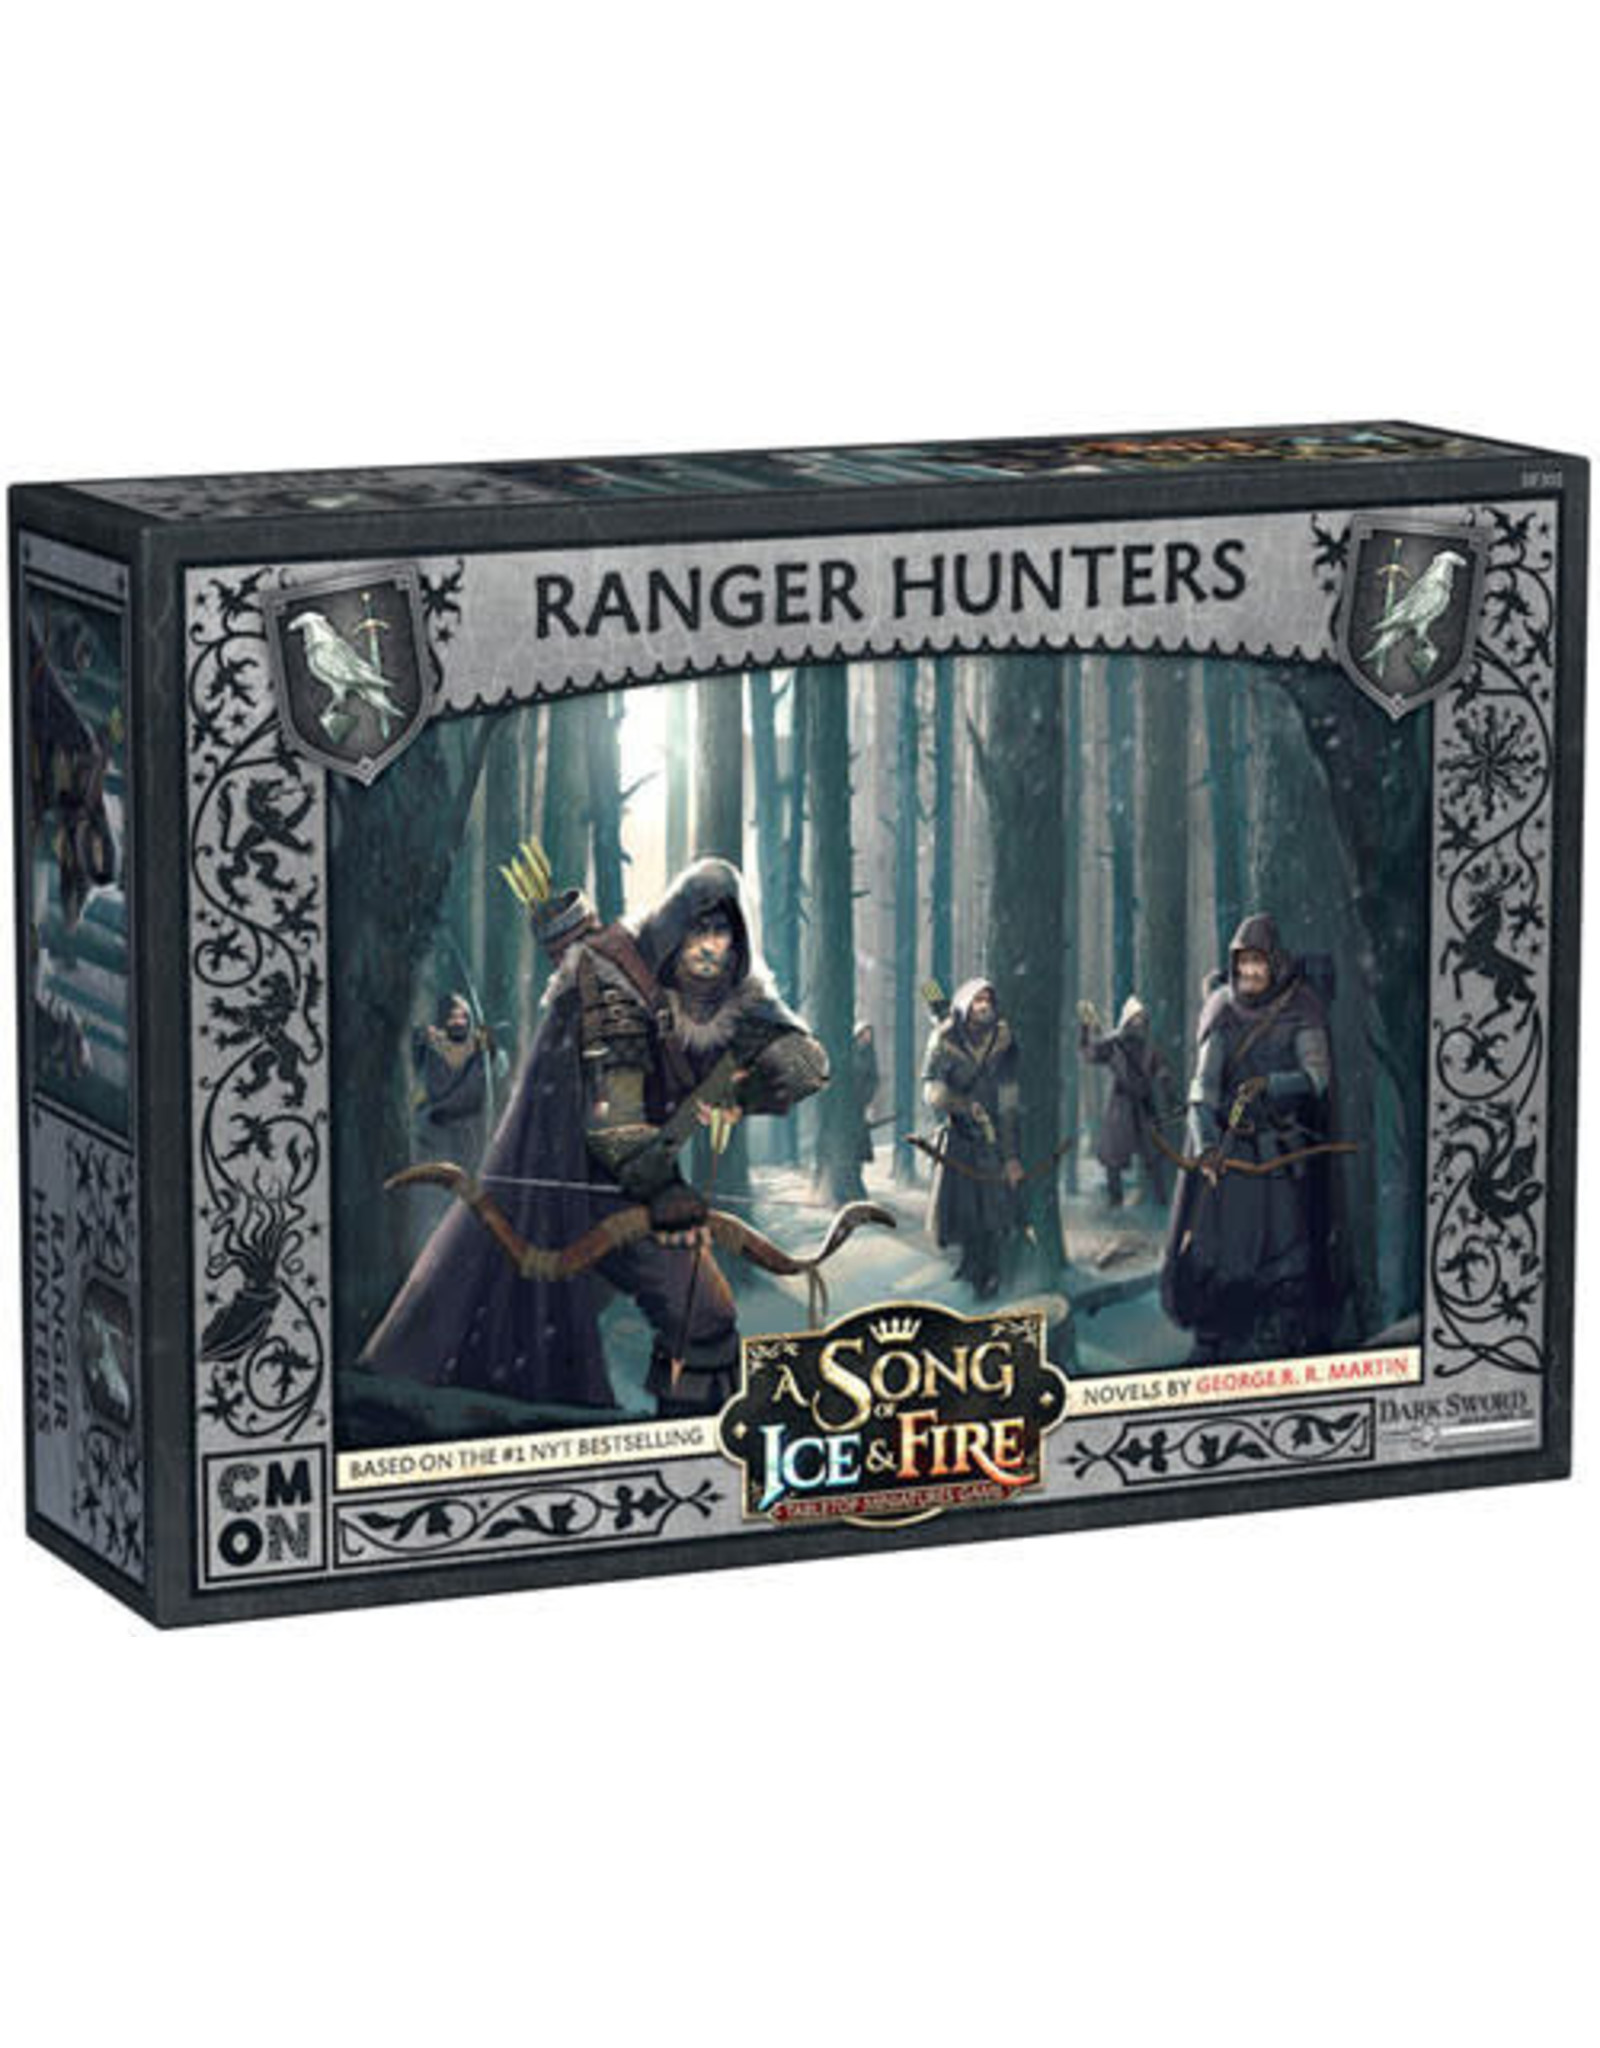 CMON A Song of Ice & Fire: Ranger Hunters